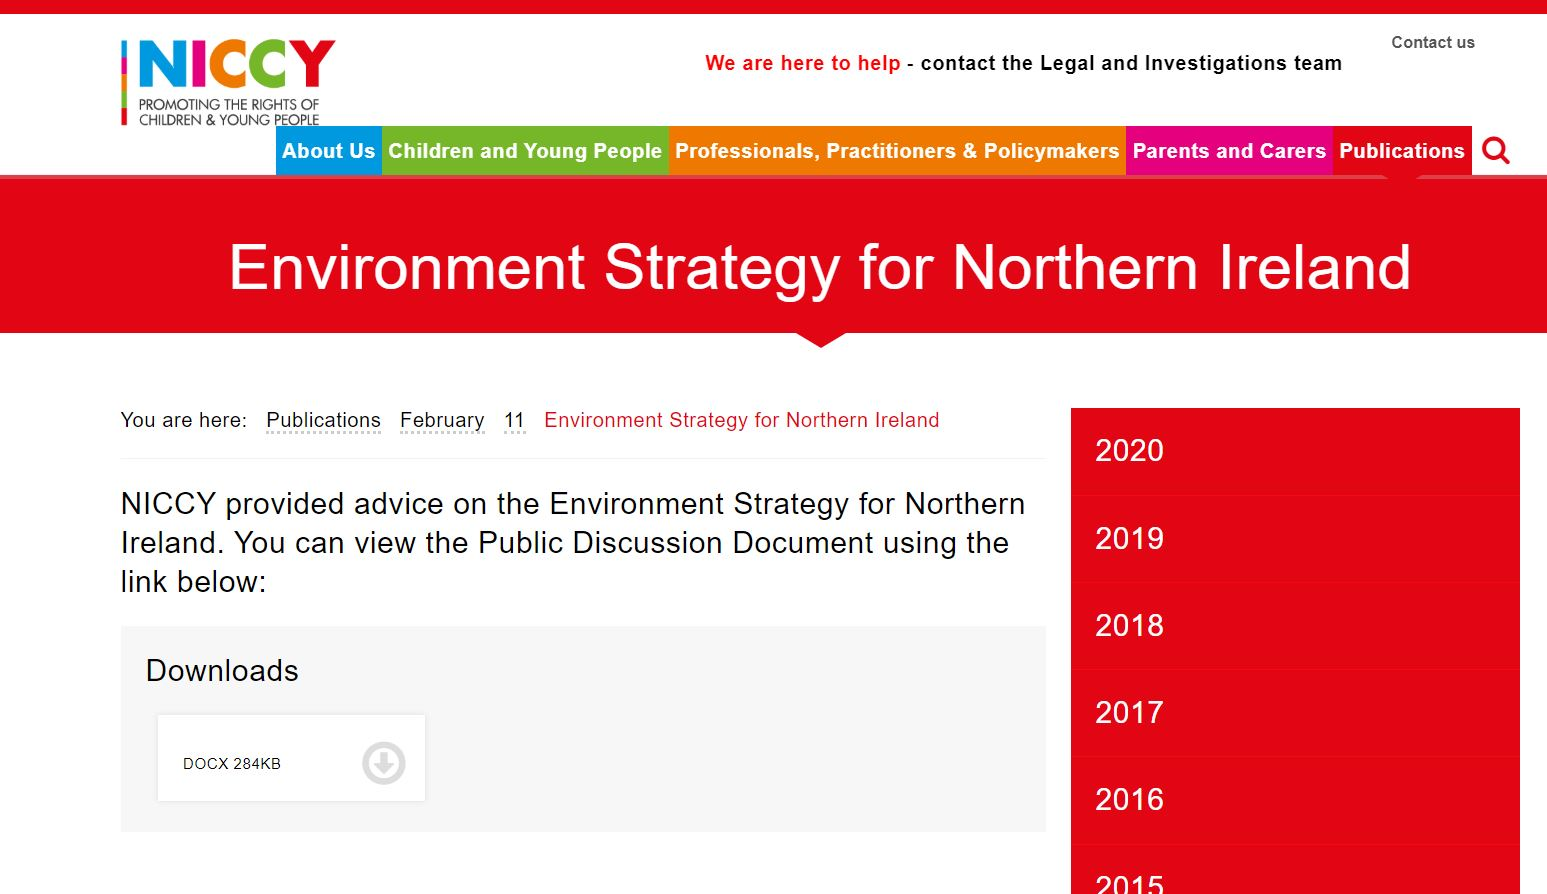 Image of Environment Strategy for Northern Ireland